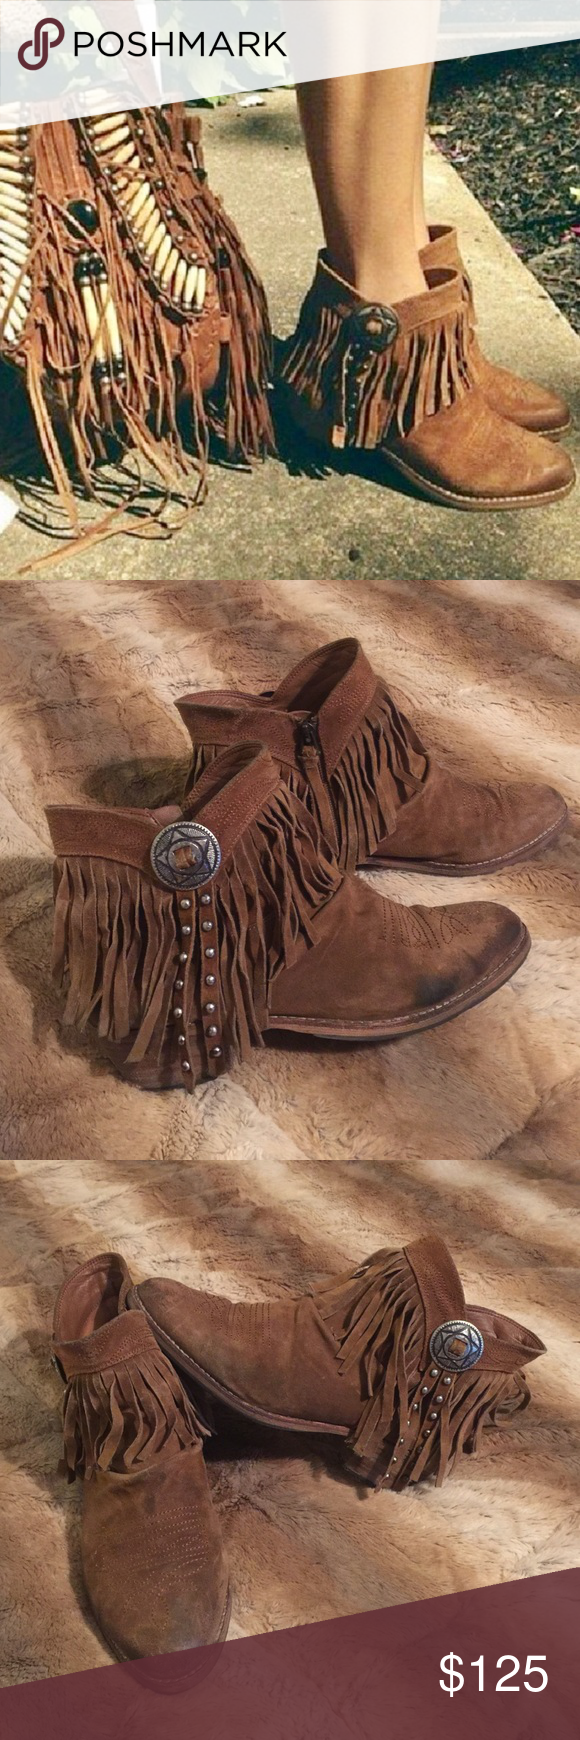 86d45bad0 SAM EDELMAN Sidney Fringe Ankle Boots Booties 10 Sam Edelman  Sidney   distressed whiskey brown